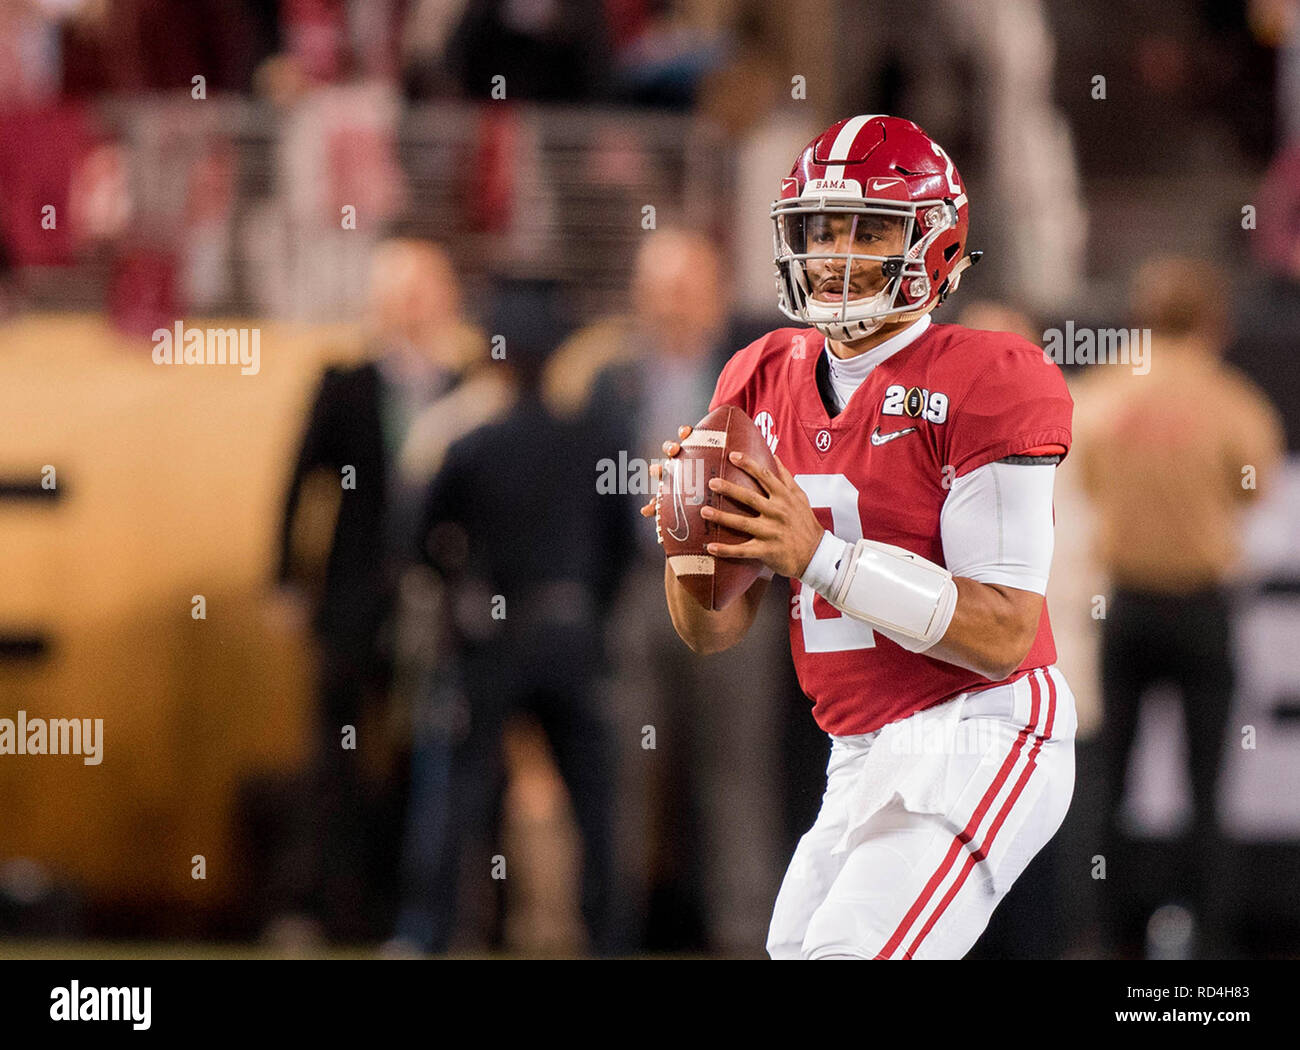 January 7, 201 Santa Clara, CA.Alabama quarterback (2) Jalen Hurts looks for an open receiver during the national championship game between the Alabama Crimson Tide and the Clemson Tigers at Levi Stadium on January 7, 2019. Clemson defeated Alabama 4416. (Absolute Complete Photographer & Company Credit: Juan Lainez/MarinMedia.org/Cal Sport Media (Network Television please contact your Sales Representative for Television usage.) (Television usage must over-burn ''MarinMedia'' on the top right corner of the screen to use on television) - Stock Image